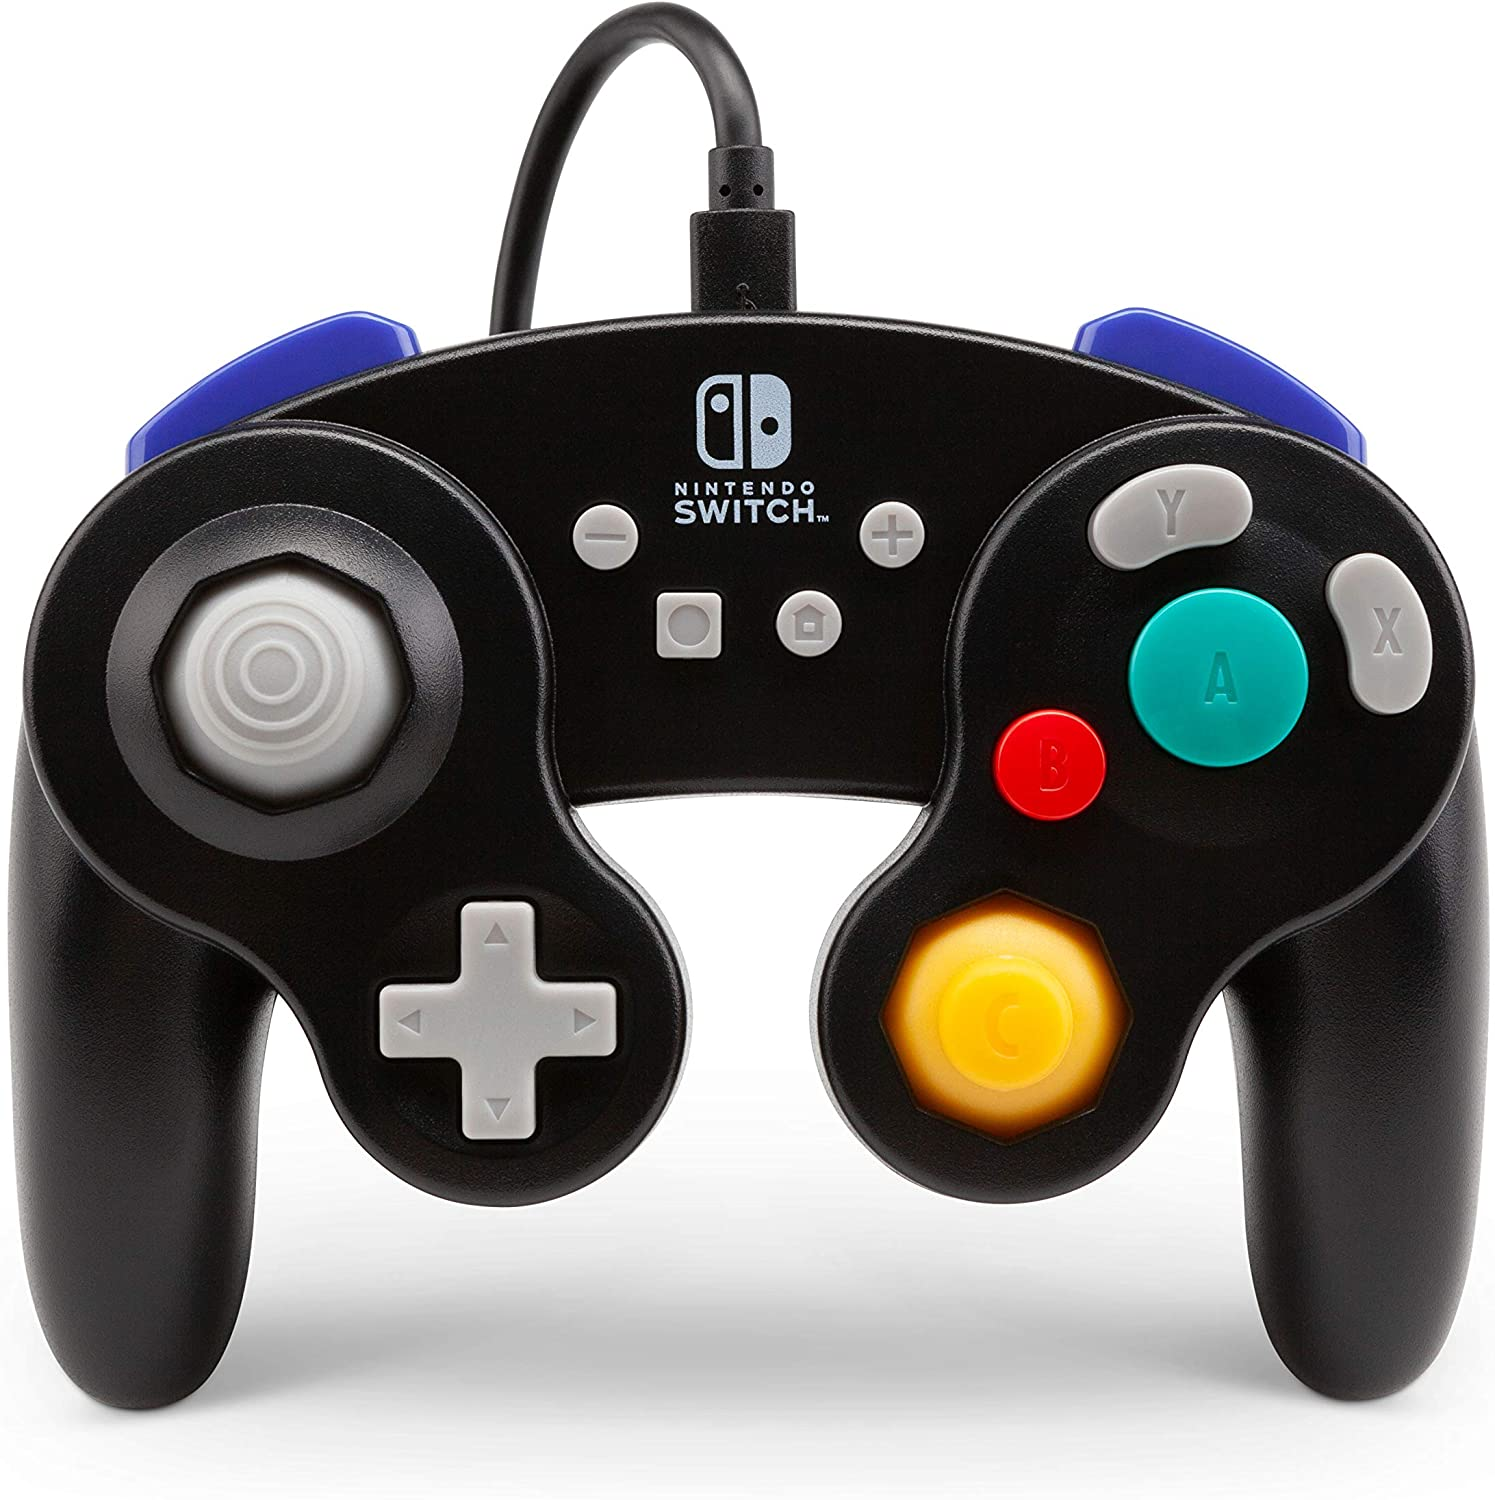 Mando Con Cable, Estilo Gamecube Negro (Nintendo Switch)